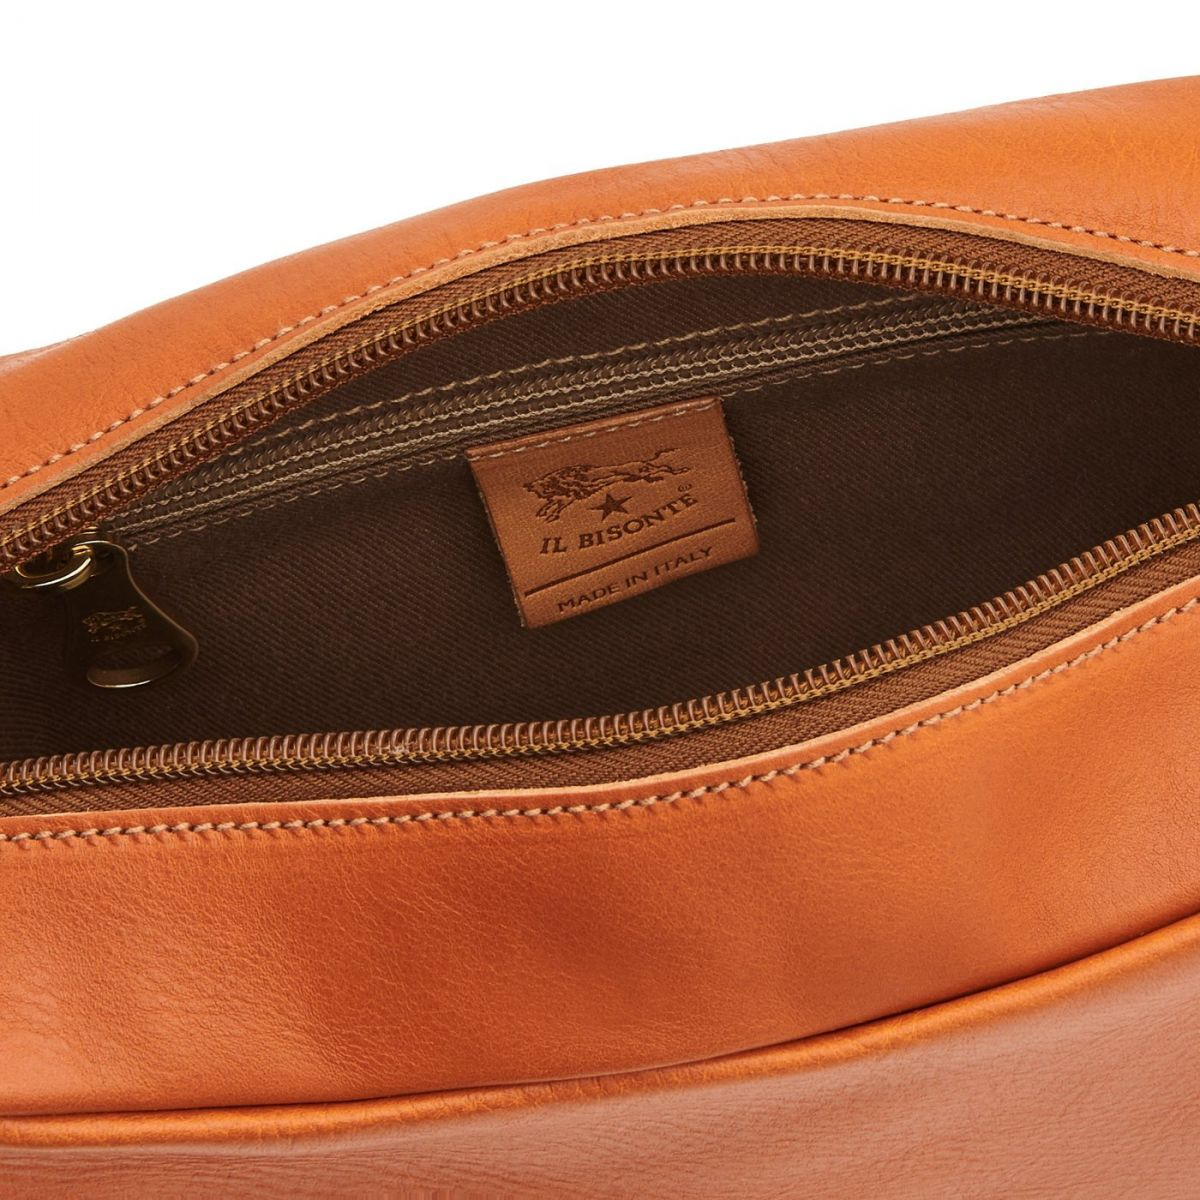 Women's Crossbody Bag Salina in Cowhide Leather BCR199 color Caramel | Details